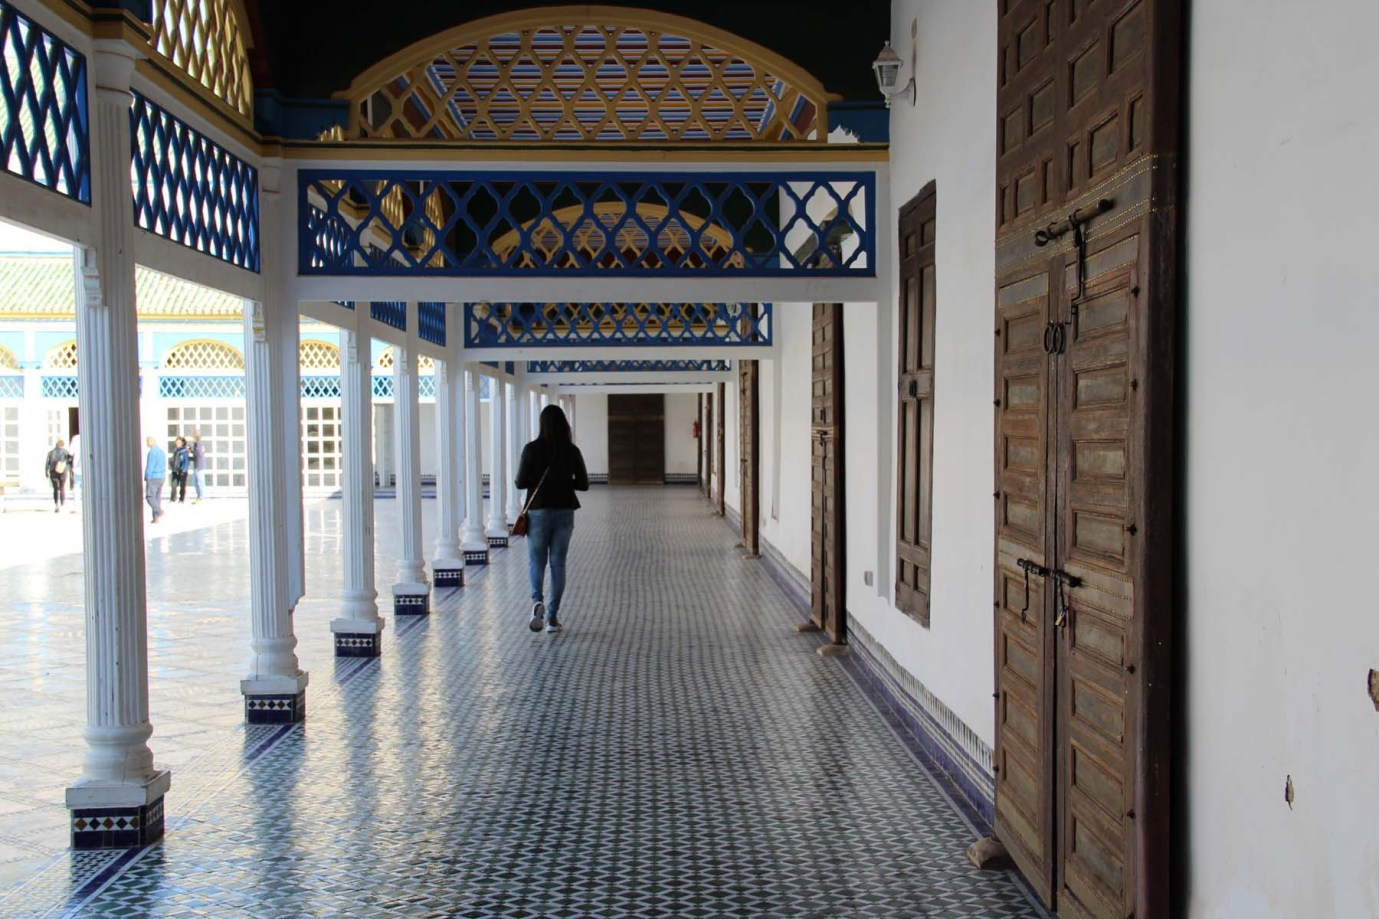 Under a porch in Bahia Palace, Marrakech